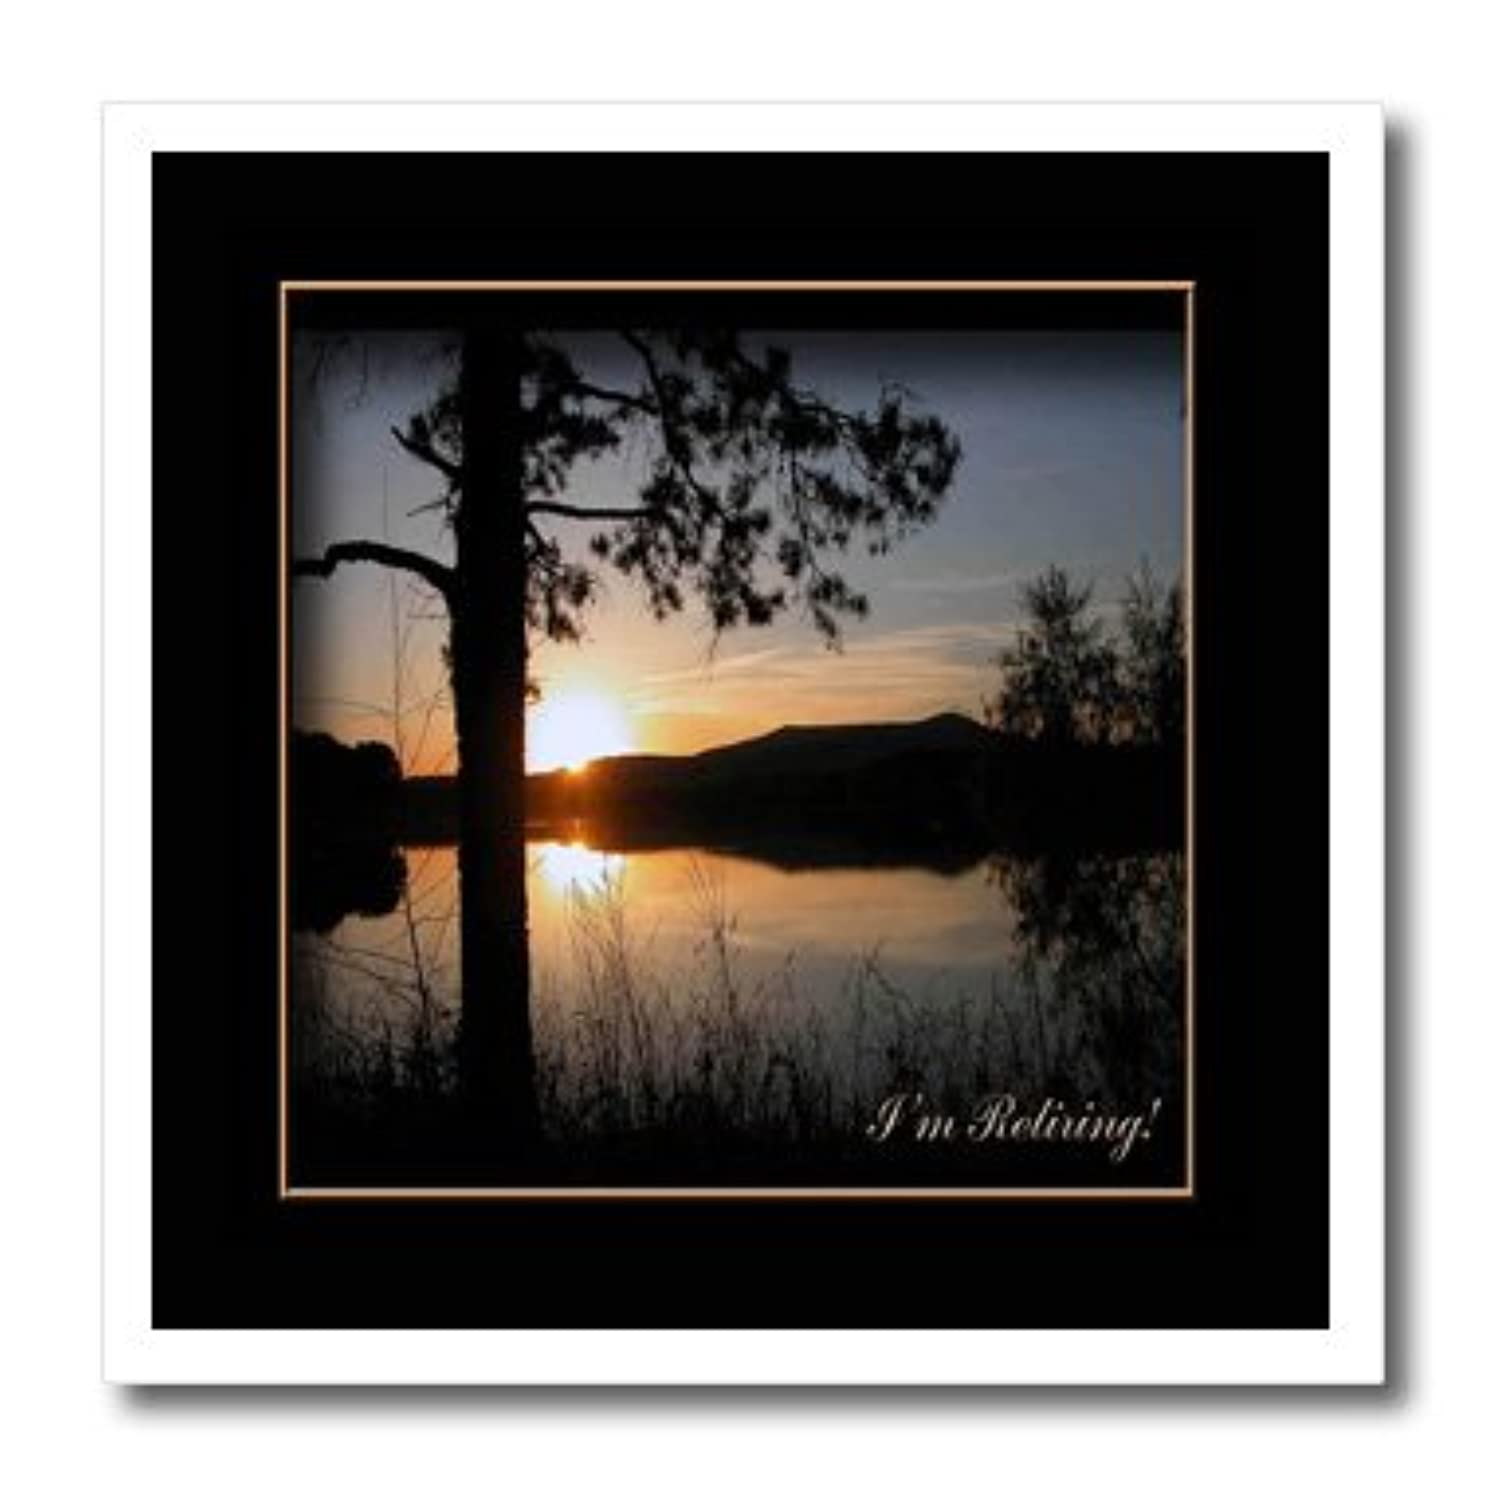 3dRose ht_43421_3 Im Retiring, Mountain Lake Sunset-Iron on Heat Transfer for White Material, 10 by 10-Inch